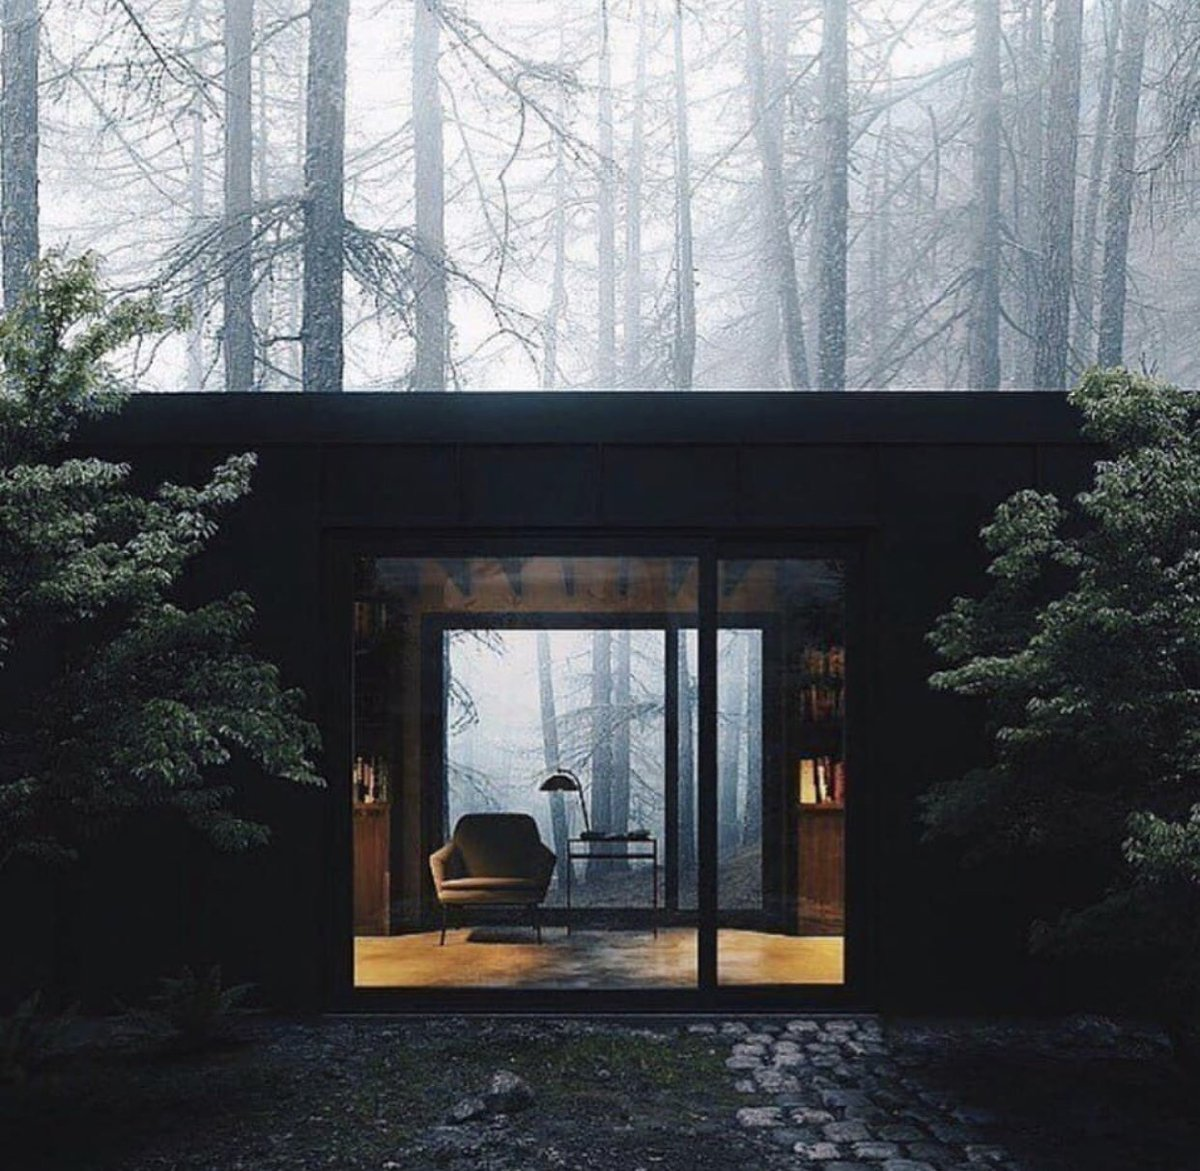 I think I wanna build a nice little hideaway like this in my forest-y backyard 😳😍😭 8iu1